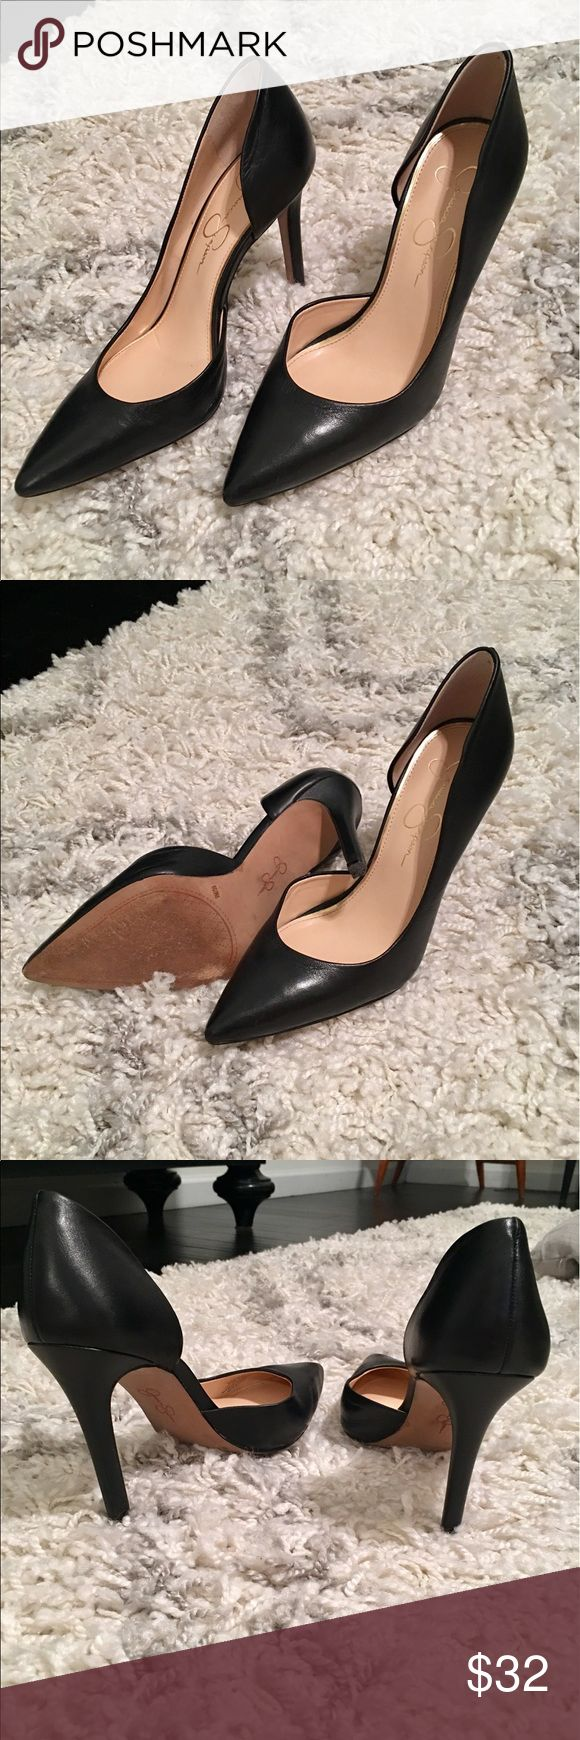 Jessica Simpson Claudette Pumps. Worn 2x These are so pretty and comfy. Near perfect condition! Jessica Simpson Shoes Heels